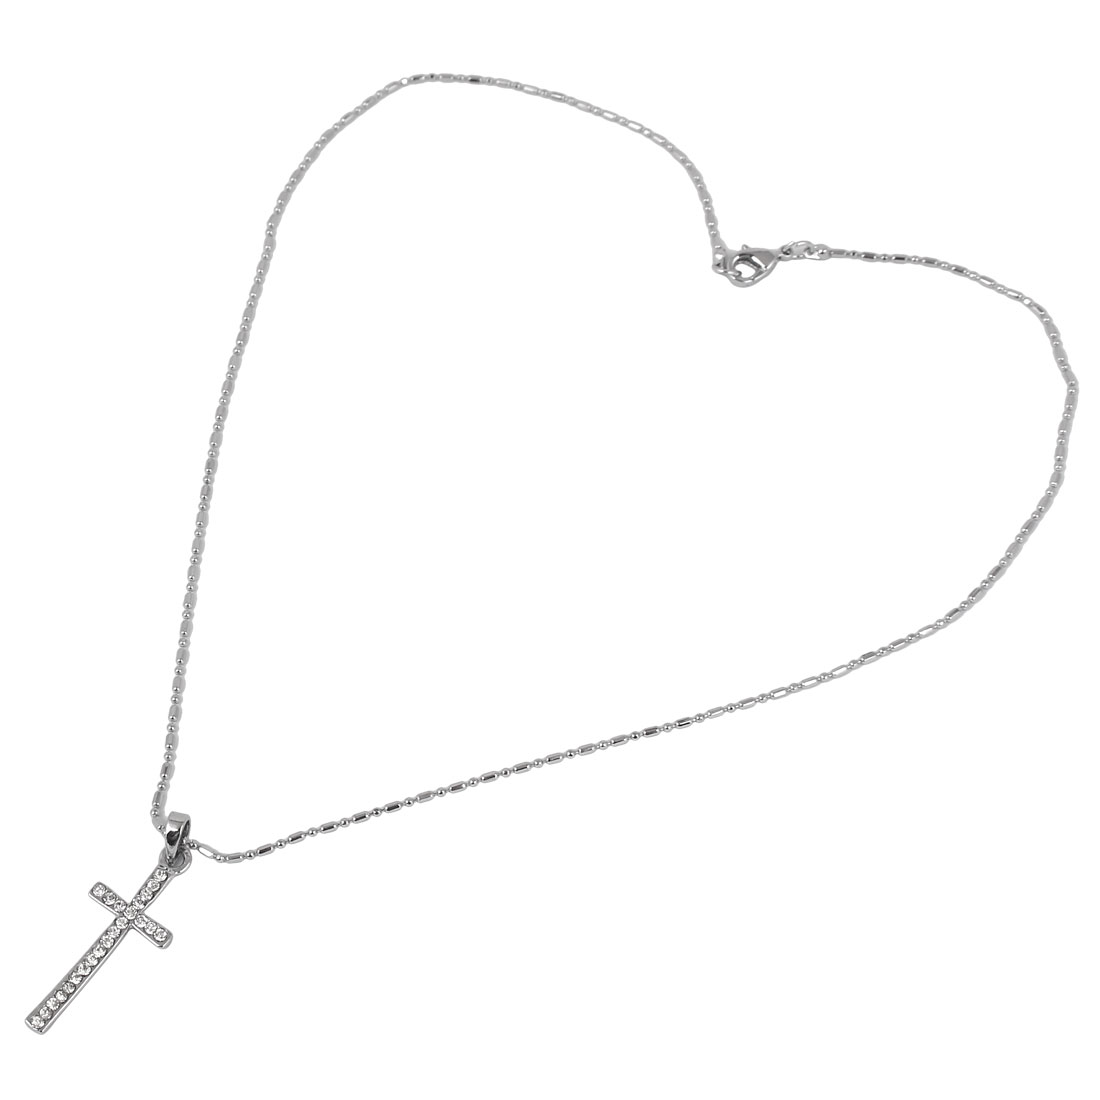 Metal Cross Pendant Lobster Buckle Strip Link Chain Necklace Neckwear